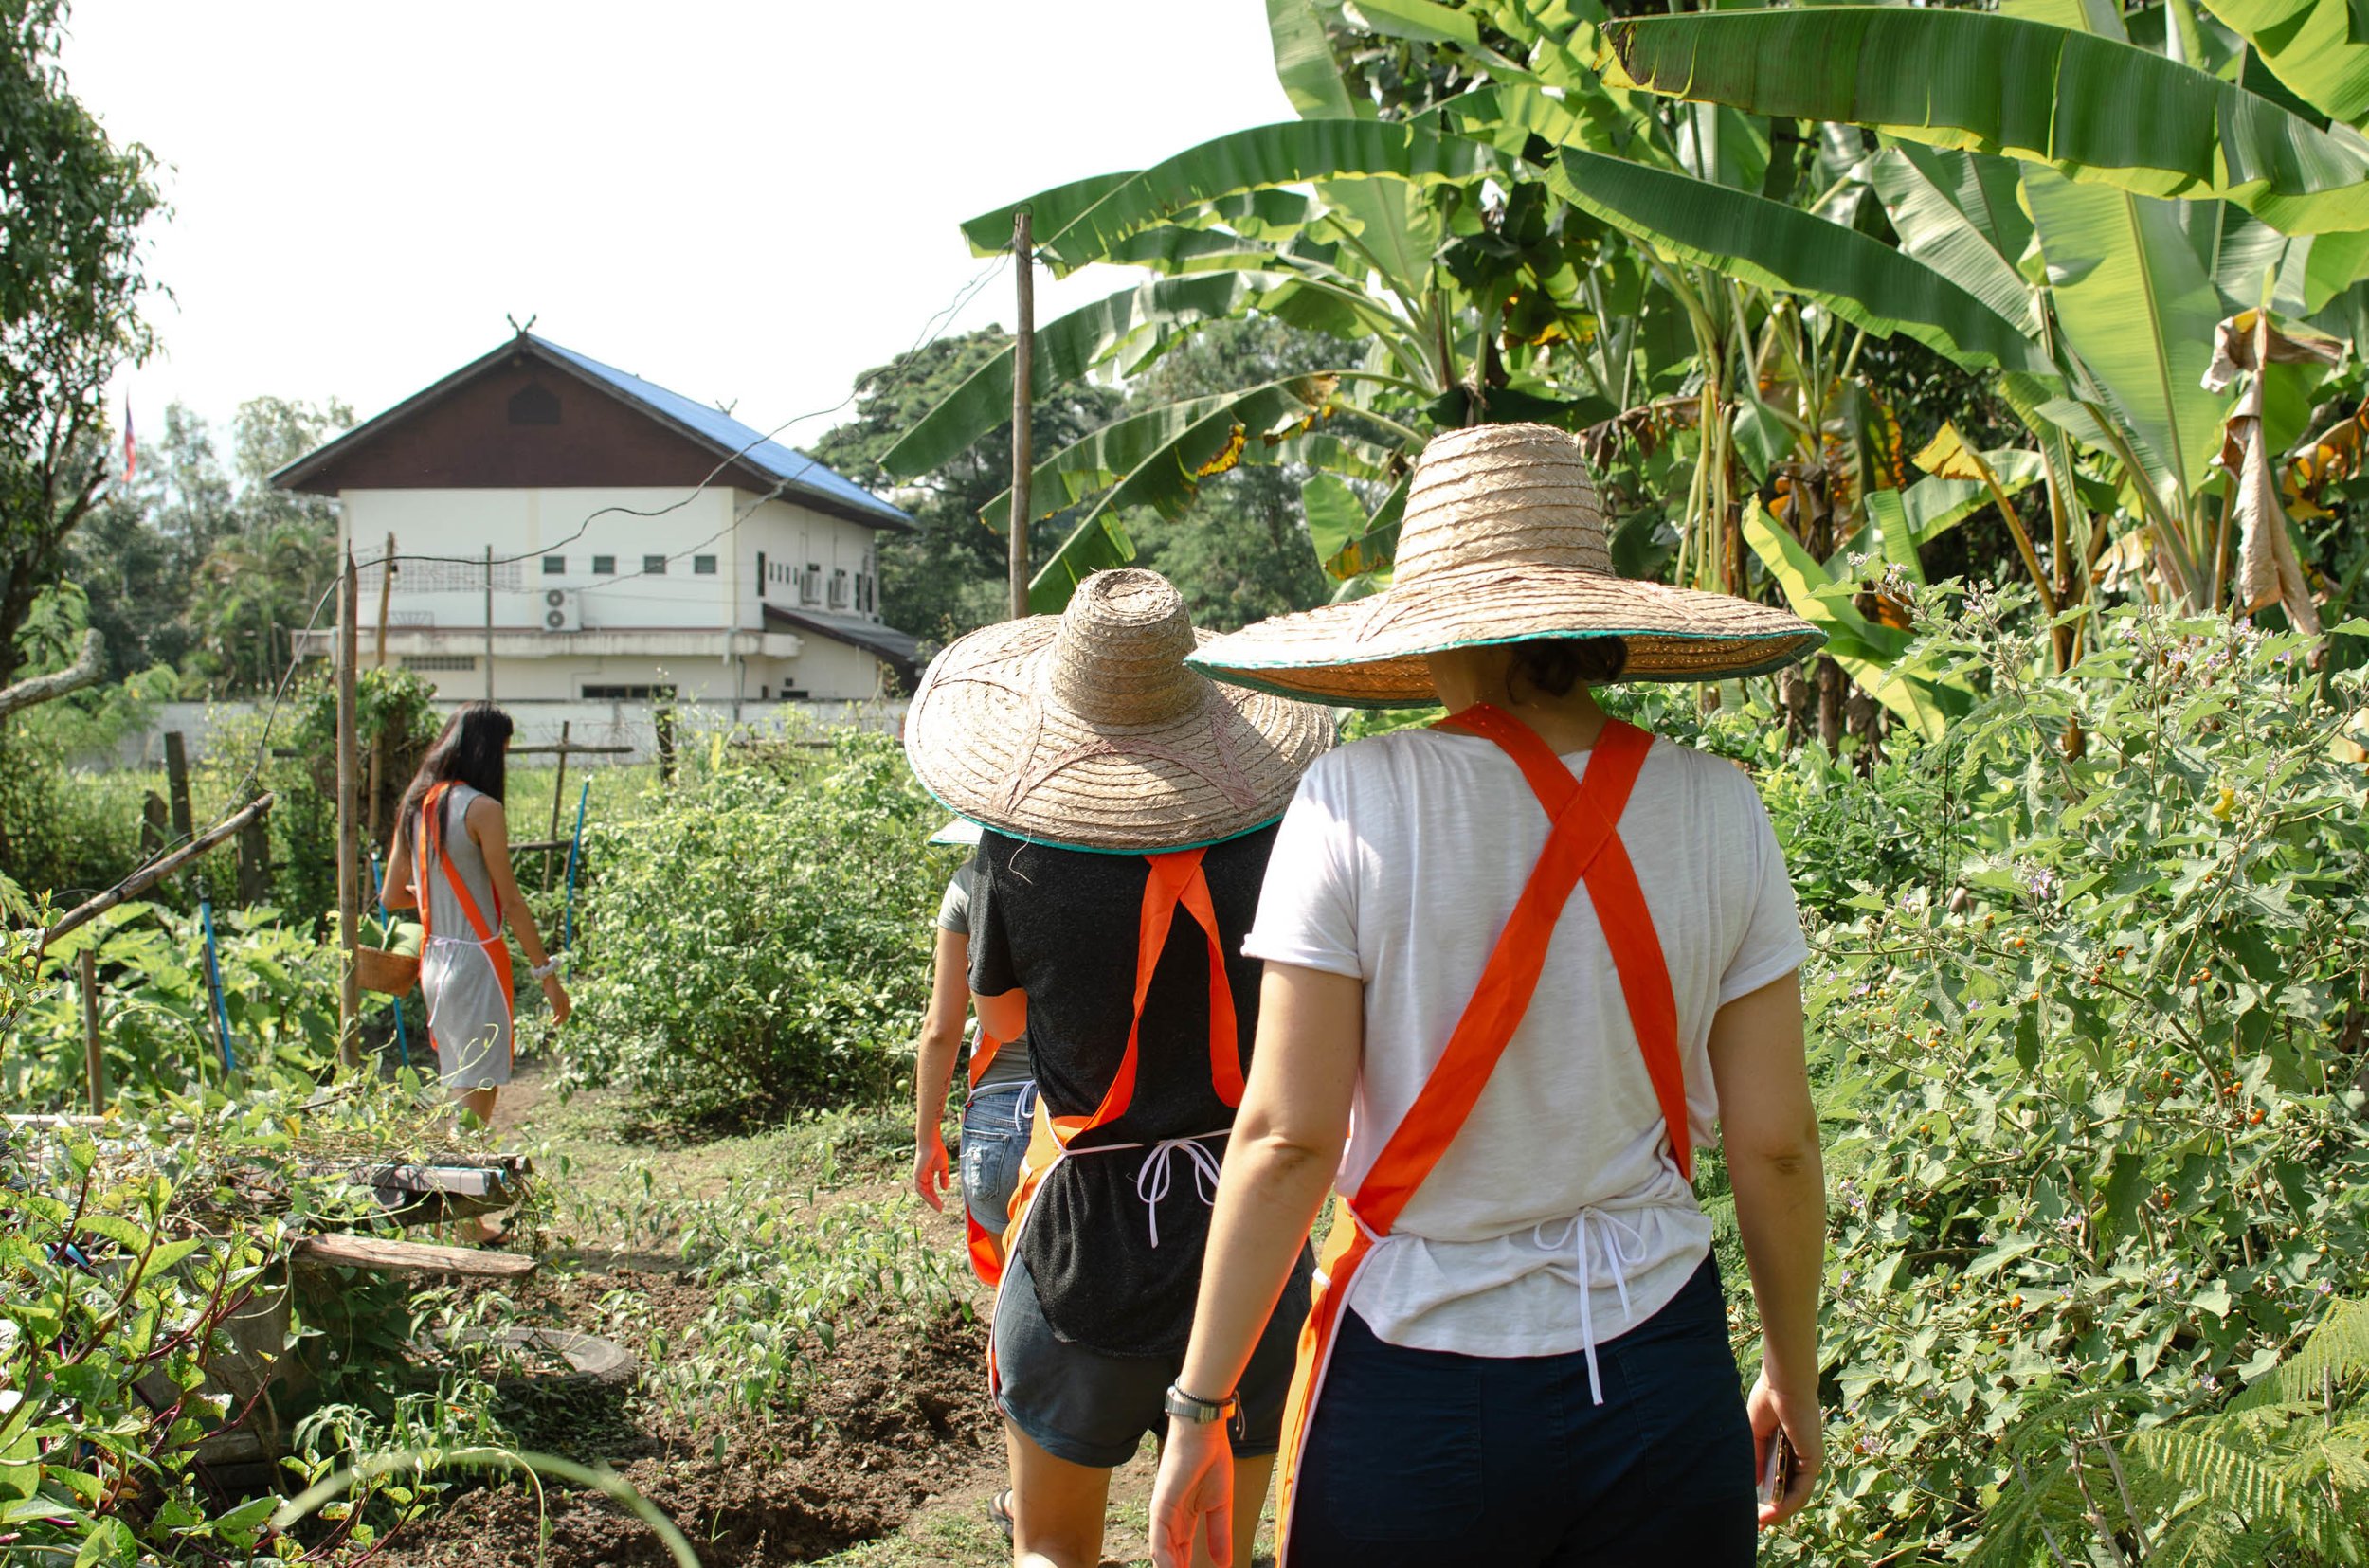 Exploring an organic garden during our Thai cooking class